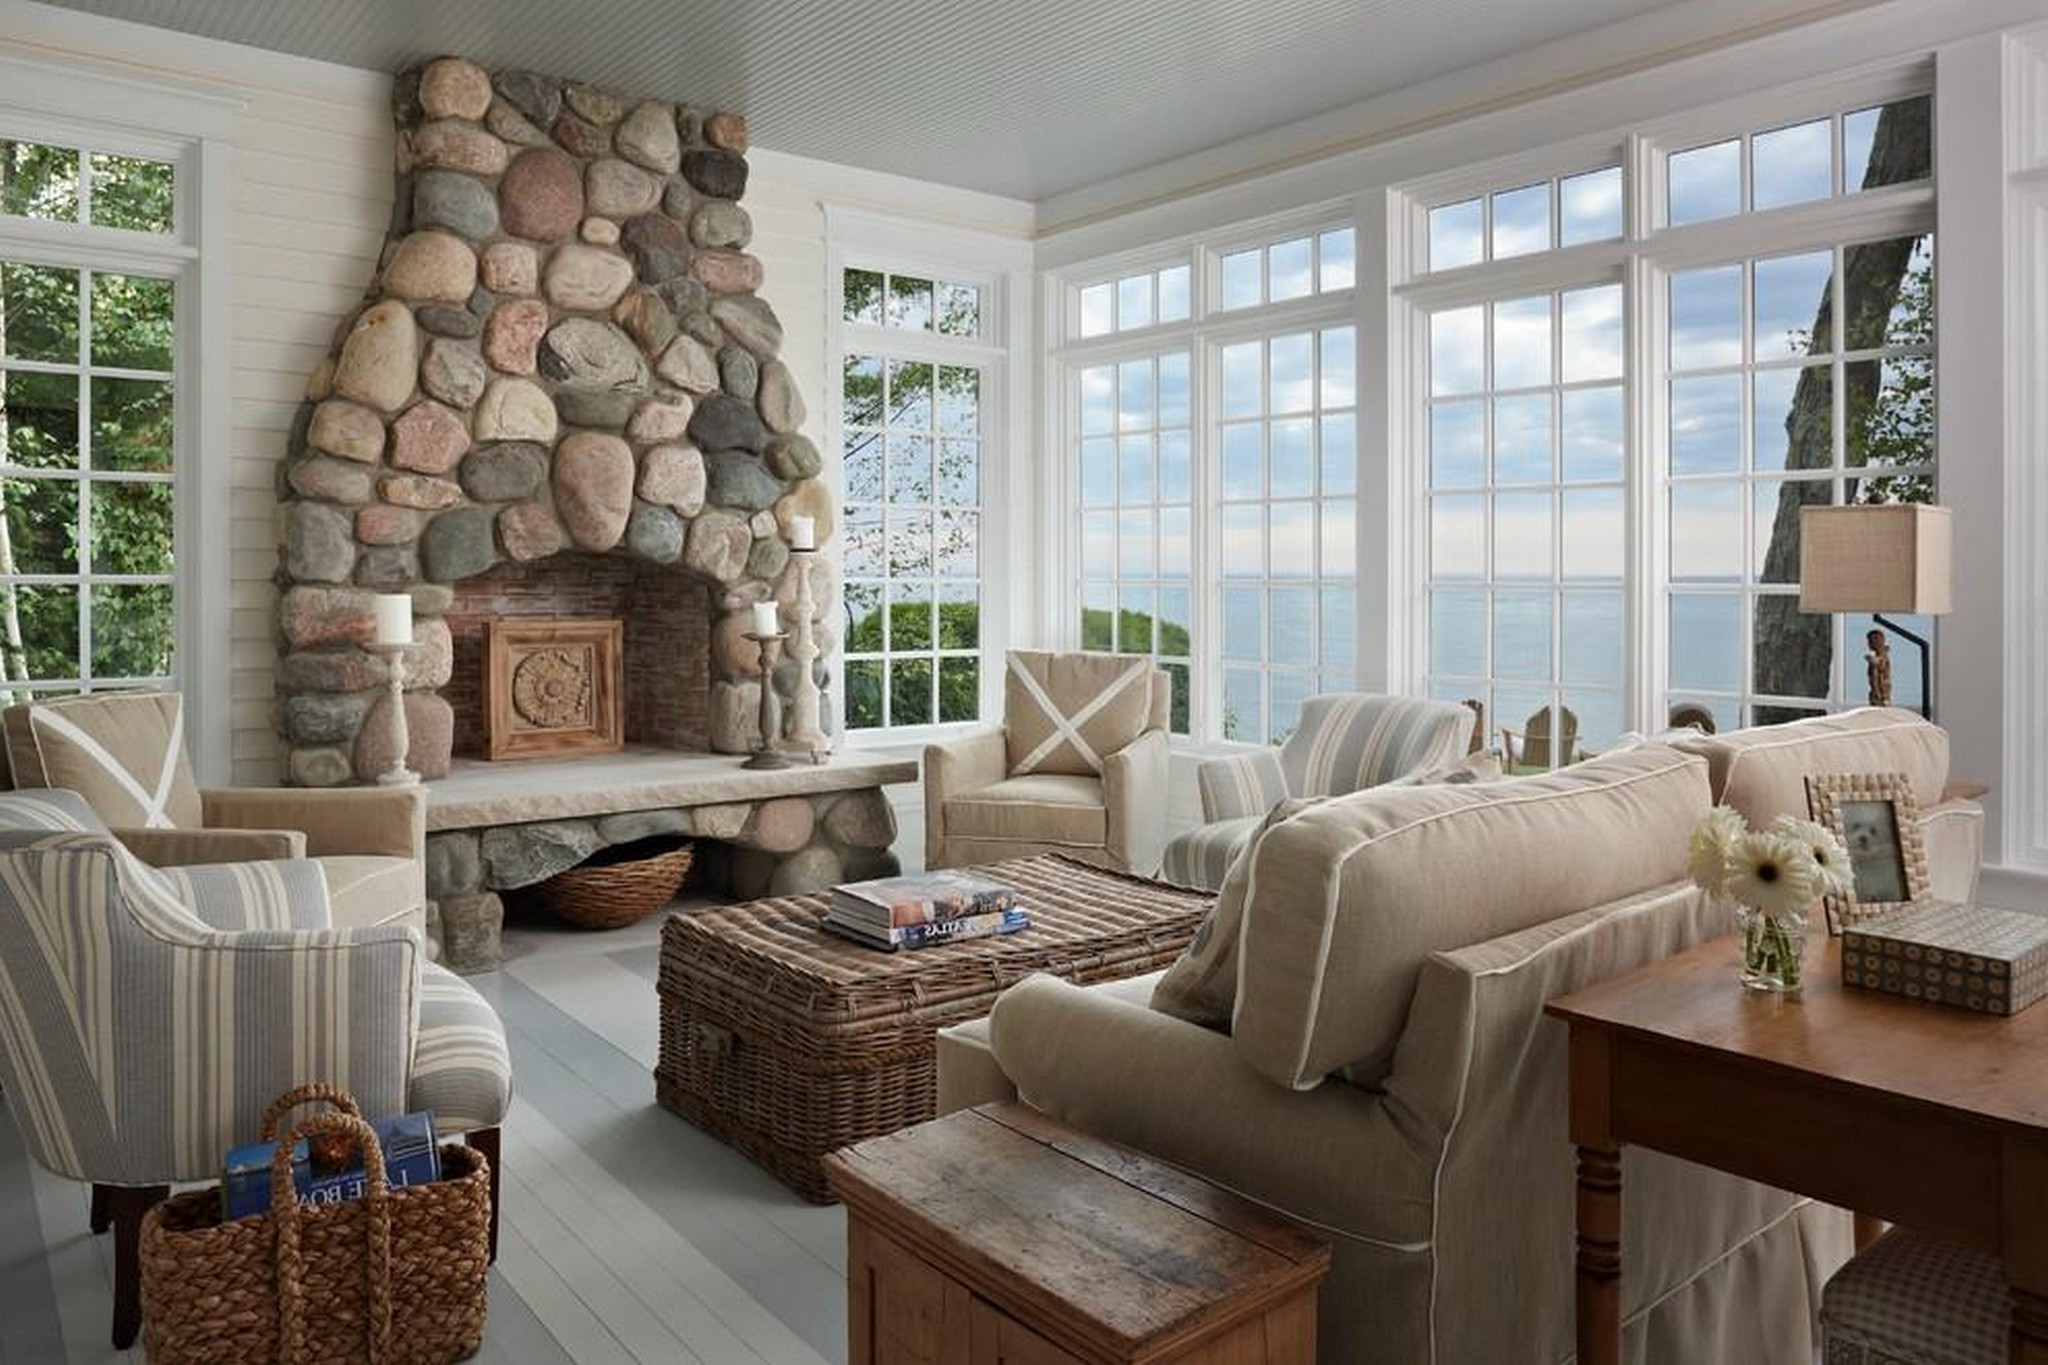 luxury cottage style living room furniture sets with natural stone fireplace design